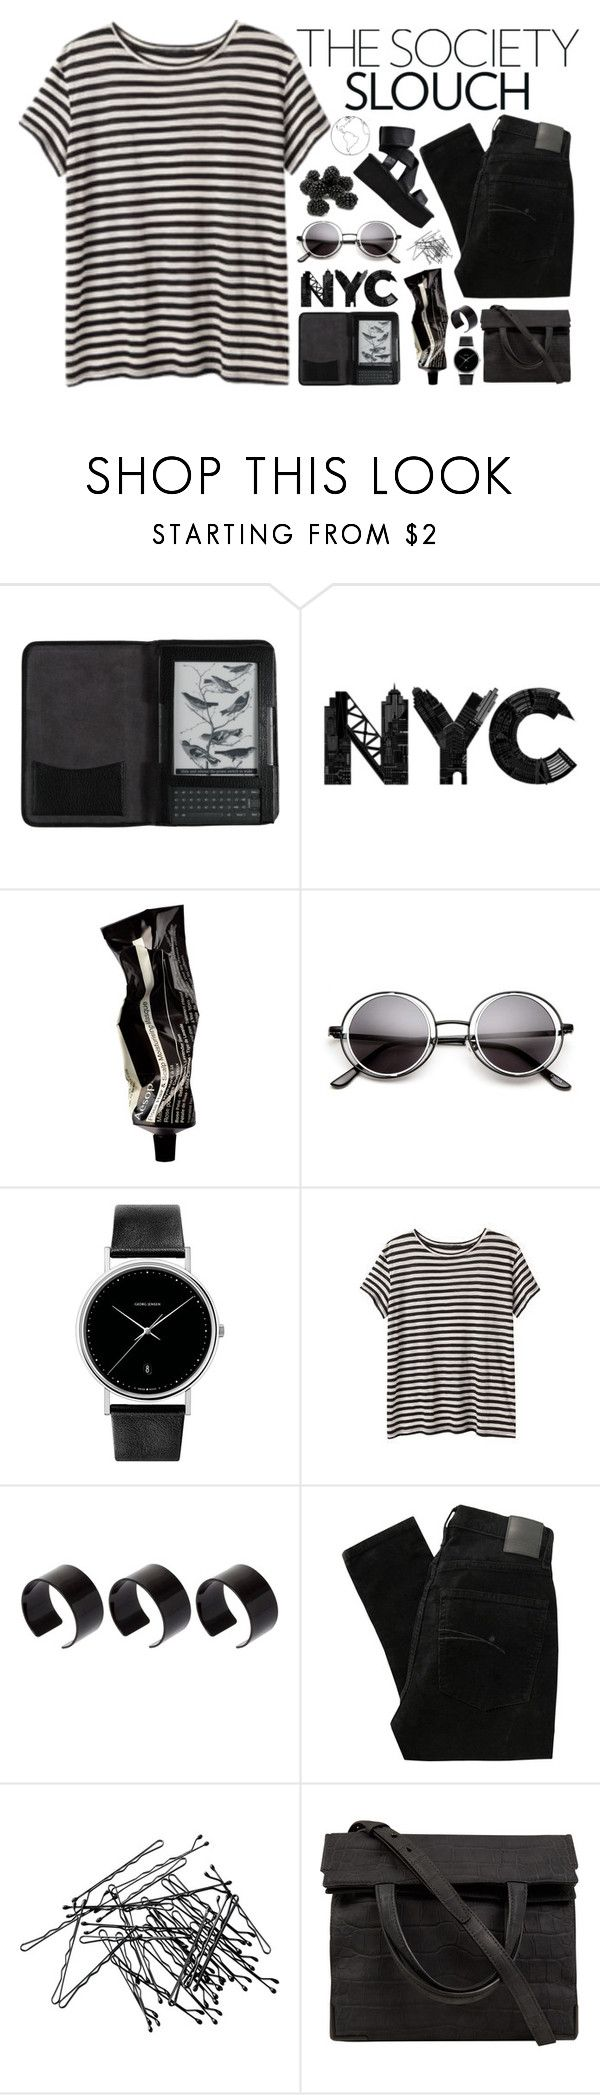 """Me:ya"" by han-n ❤ liked on Polyvore featuring Cole Haan, Aesop, Georg Jensen, ASOS, Nobody Denim, H&M, Alexander Wang and Cinzia Araia"